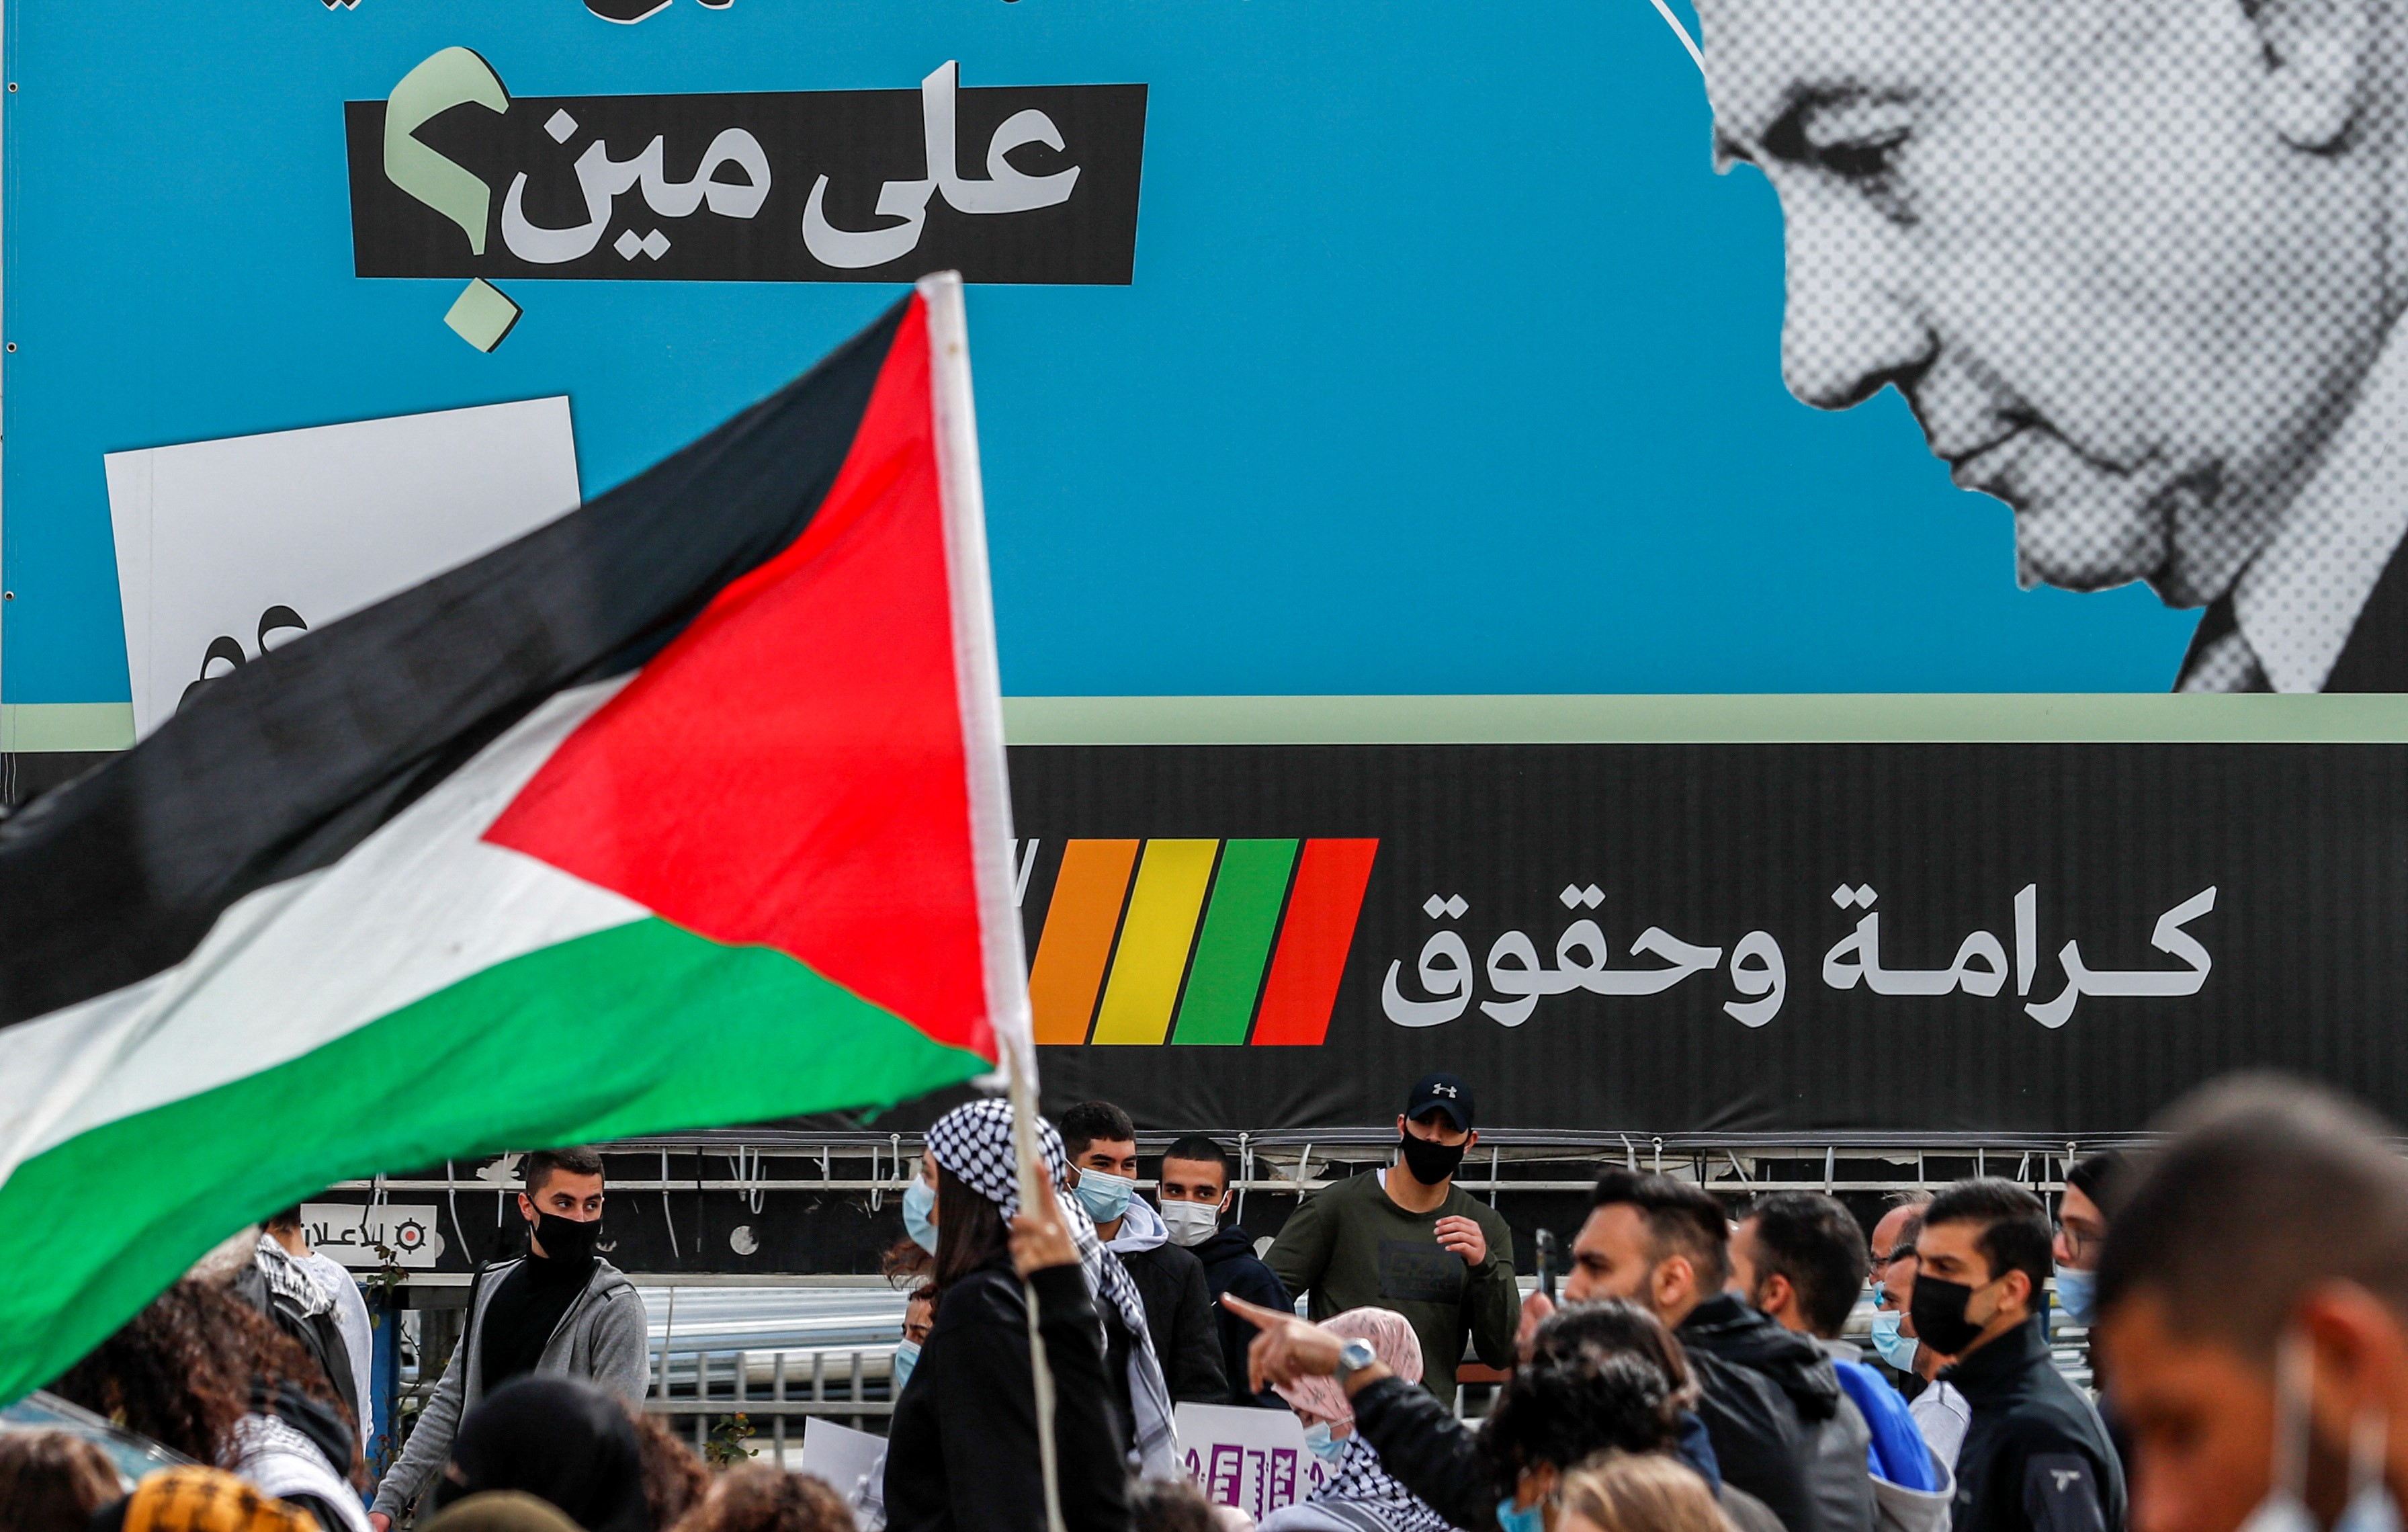 """A demonstrator holds a Palestinian flag near an electoral billboard by the predominantly Arab Israeli electoral alliance the Joint List depicting Israeli prime minister Benjamin Netanyahu with a caption reading in Arabic """"whom is he fooling?"""" during a demonstration"""